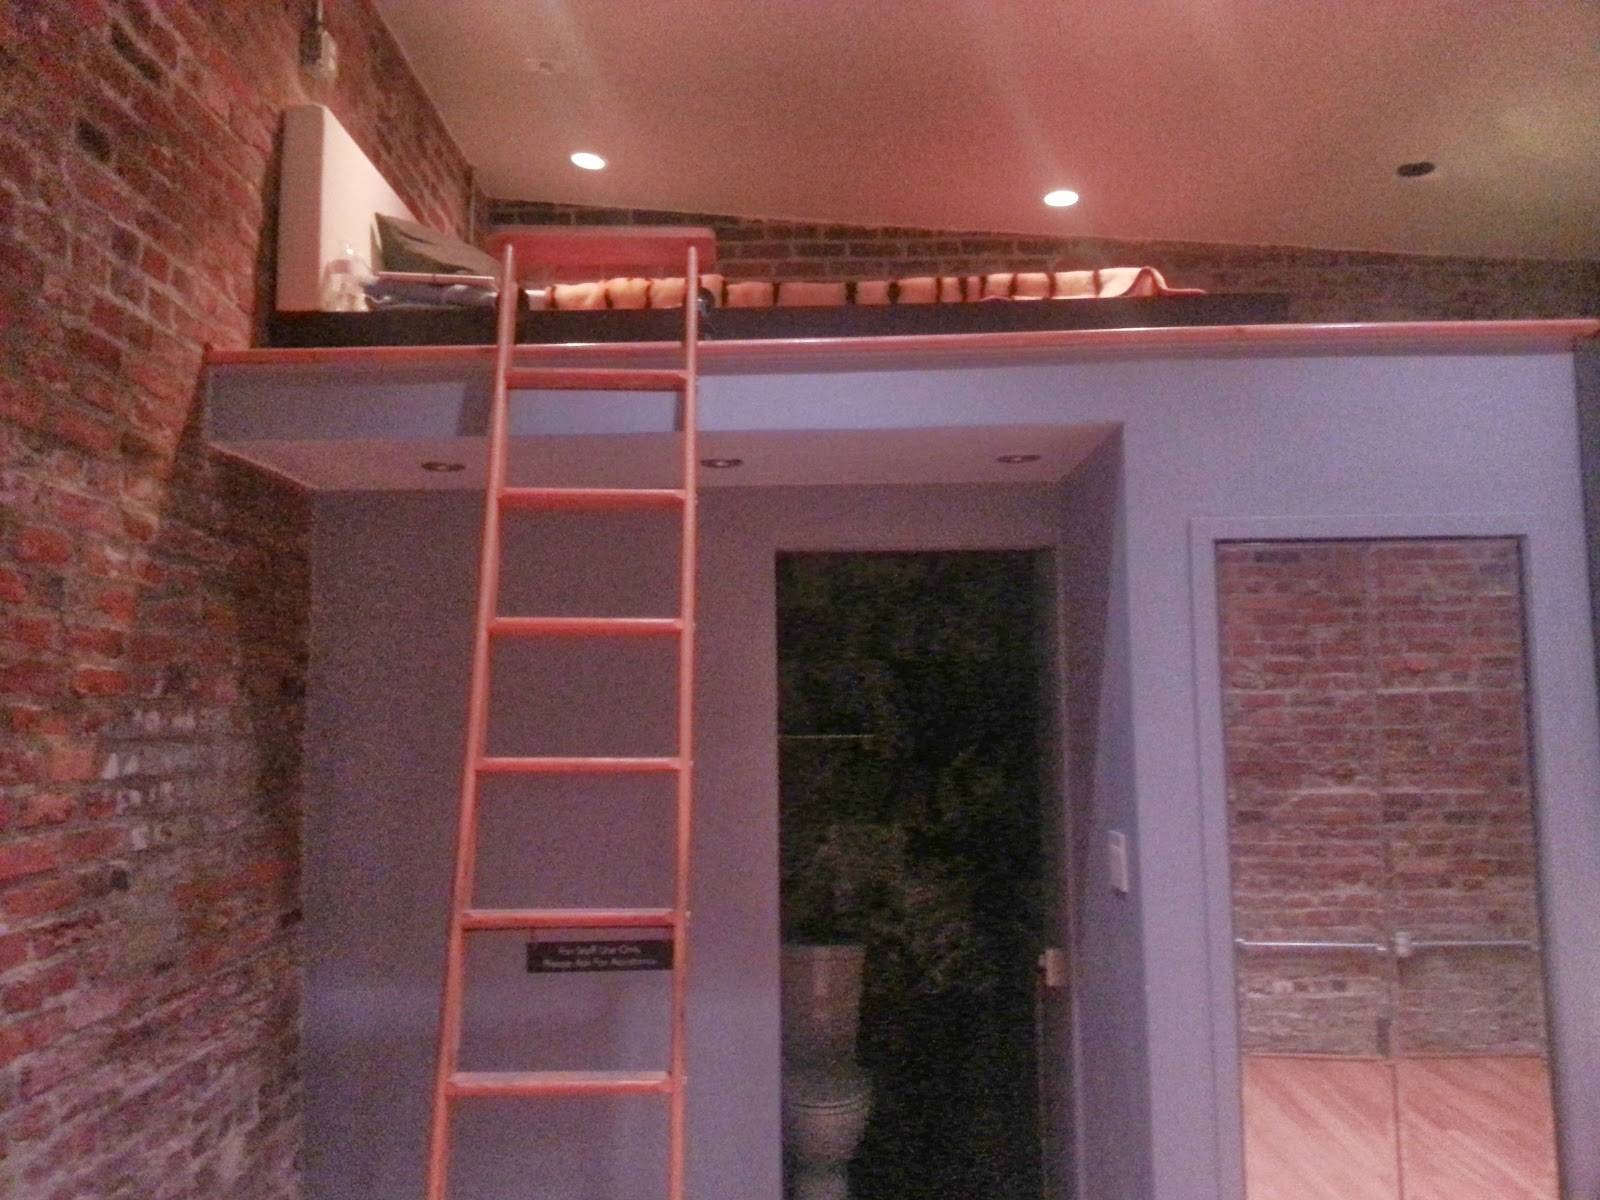 21-Ladder-Barnes-and-Noble-imgur-Storage-Unit-Renovation-in-Tiny-Architecture-www-designstack-co